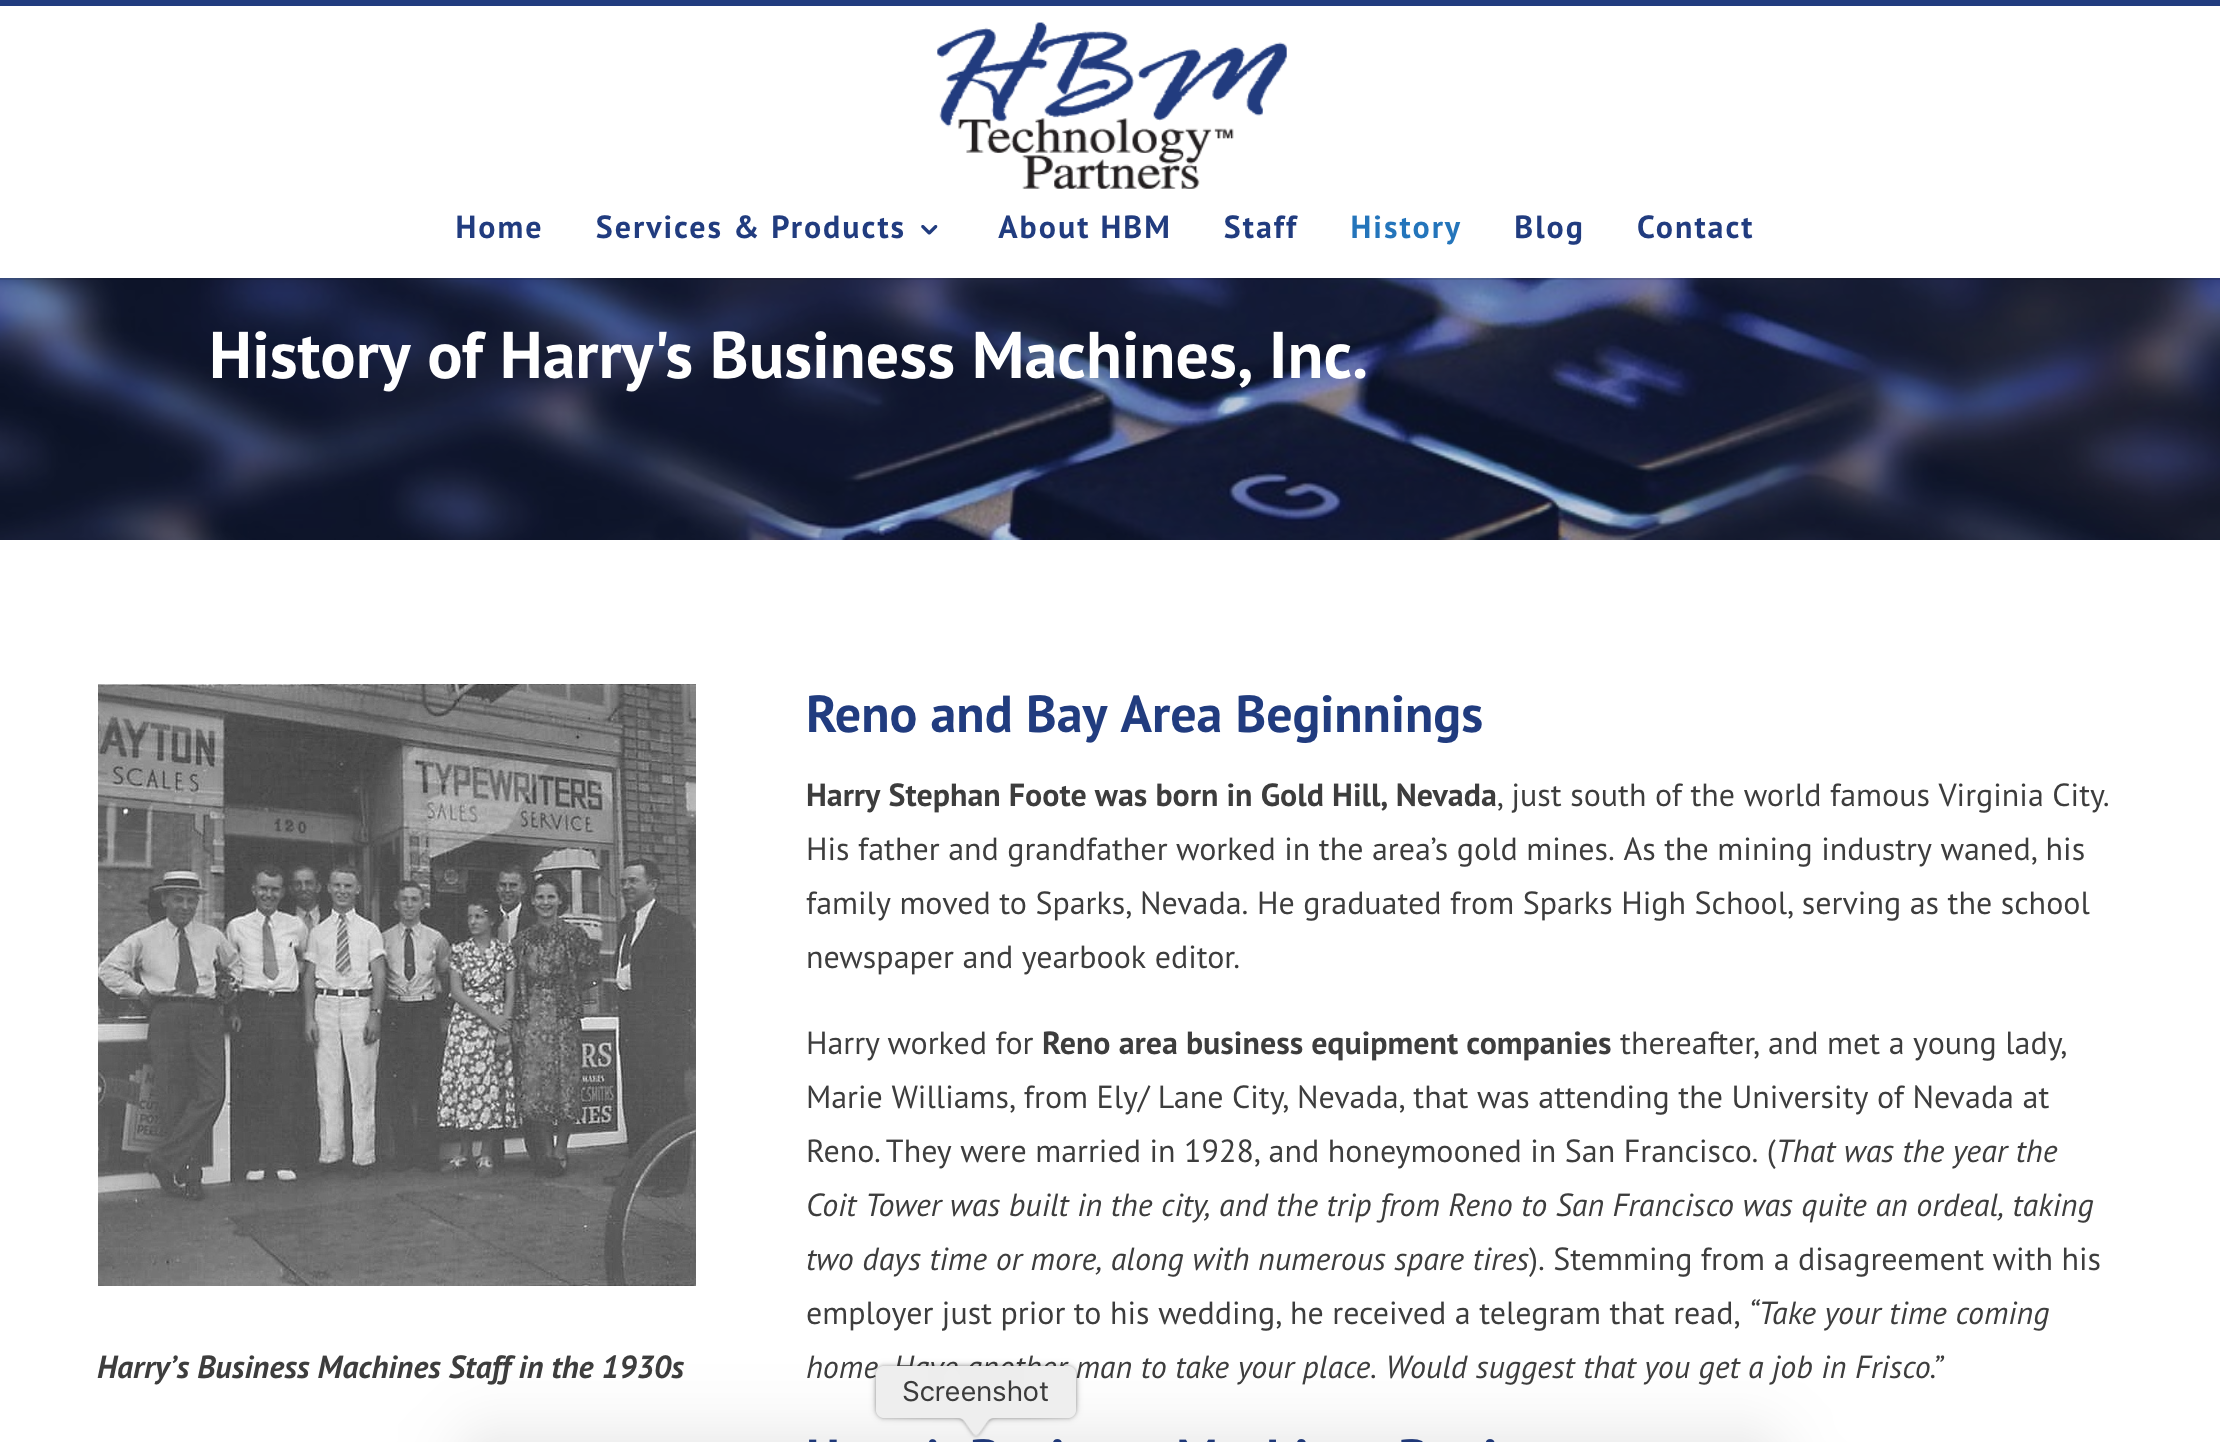 A screengrab from HBM's website tracing back the company's family inception.